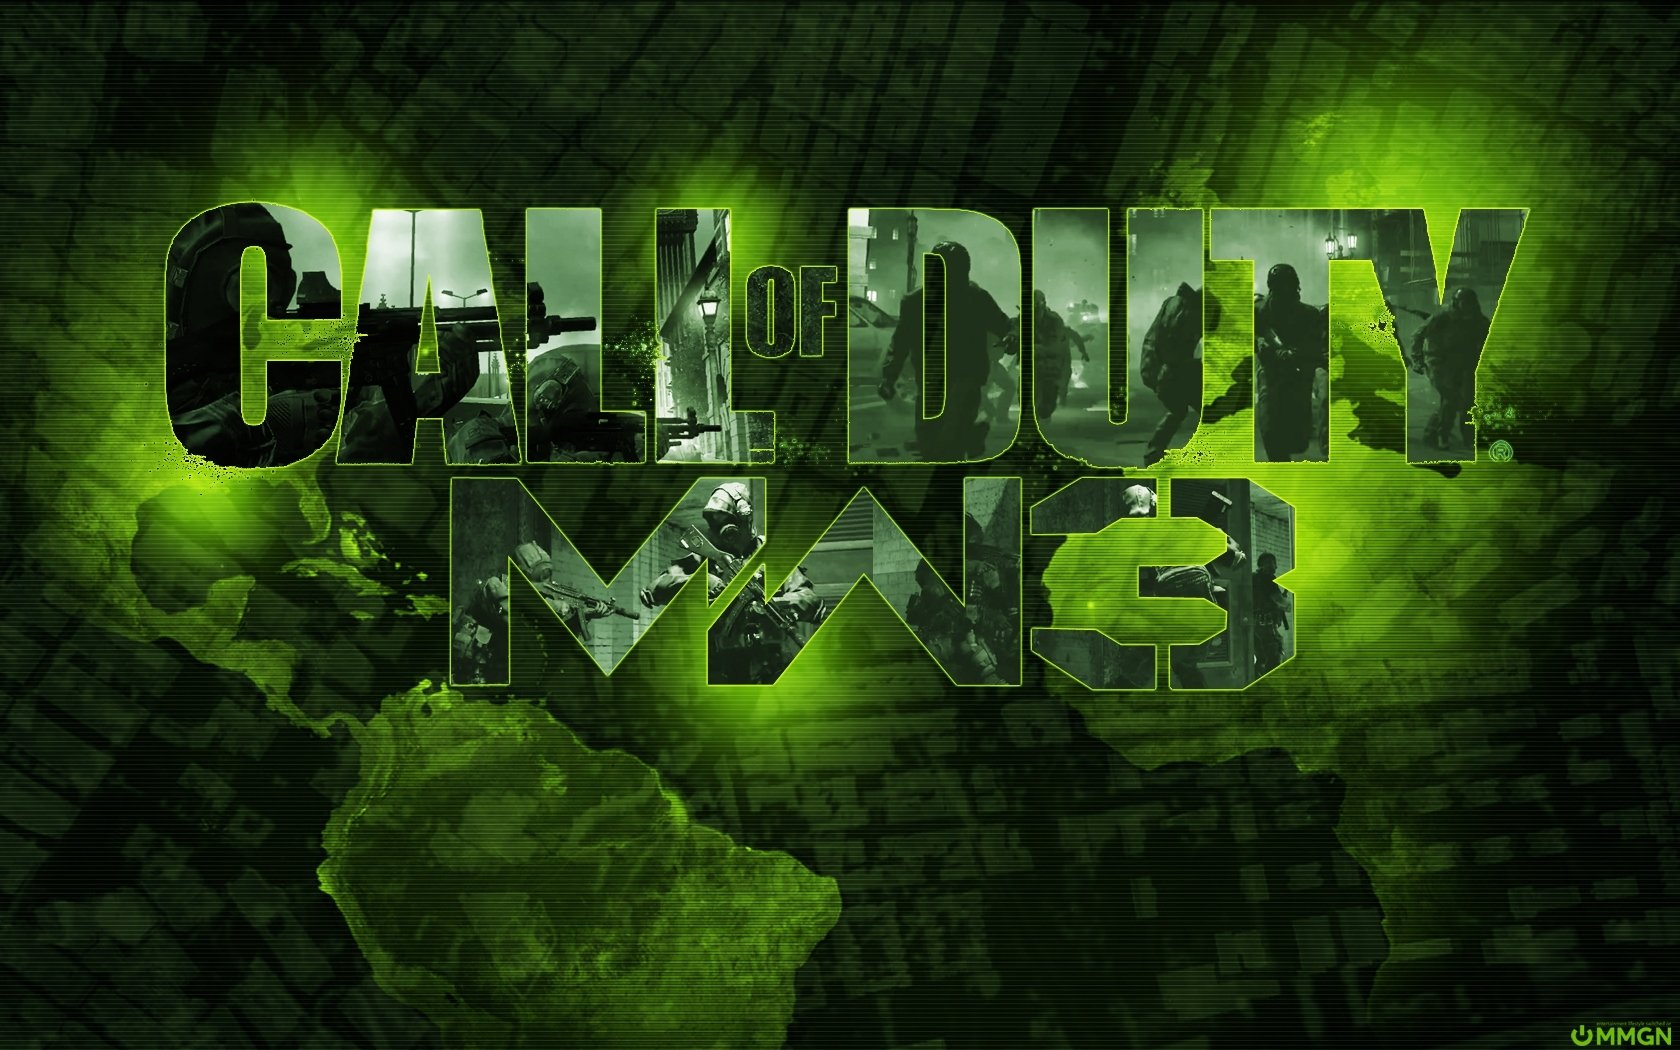 Download Wallpapers Download 1680x1050 3 call call of duty mw3 1680x1050